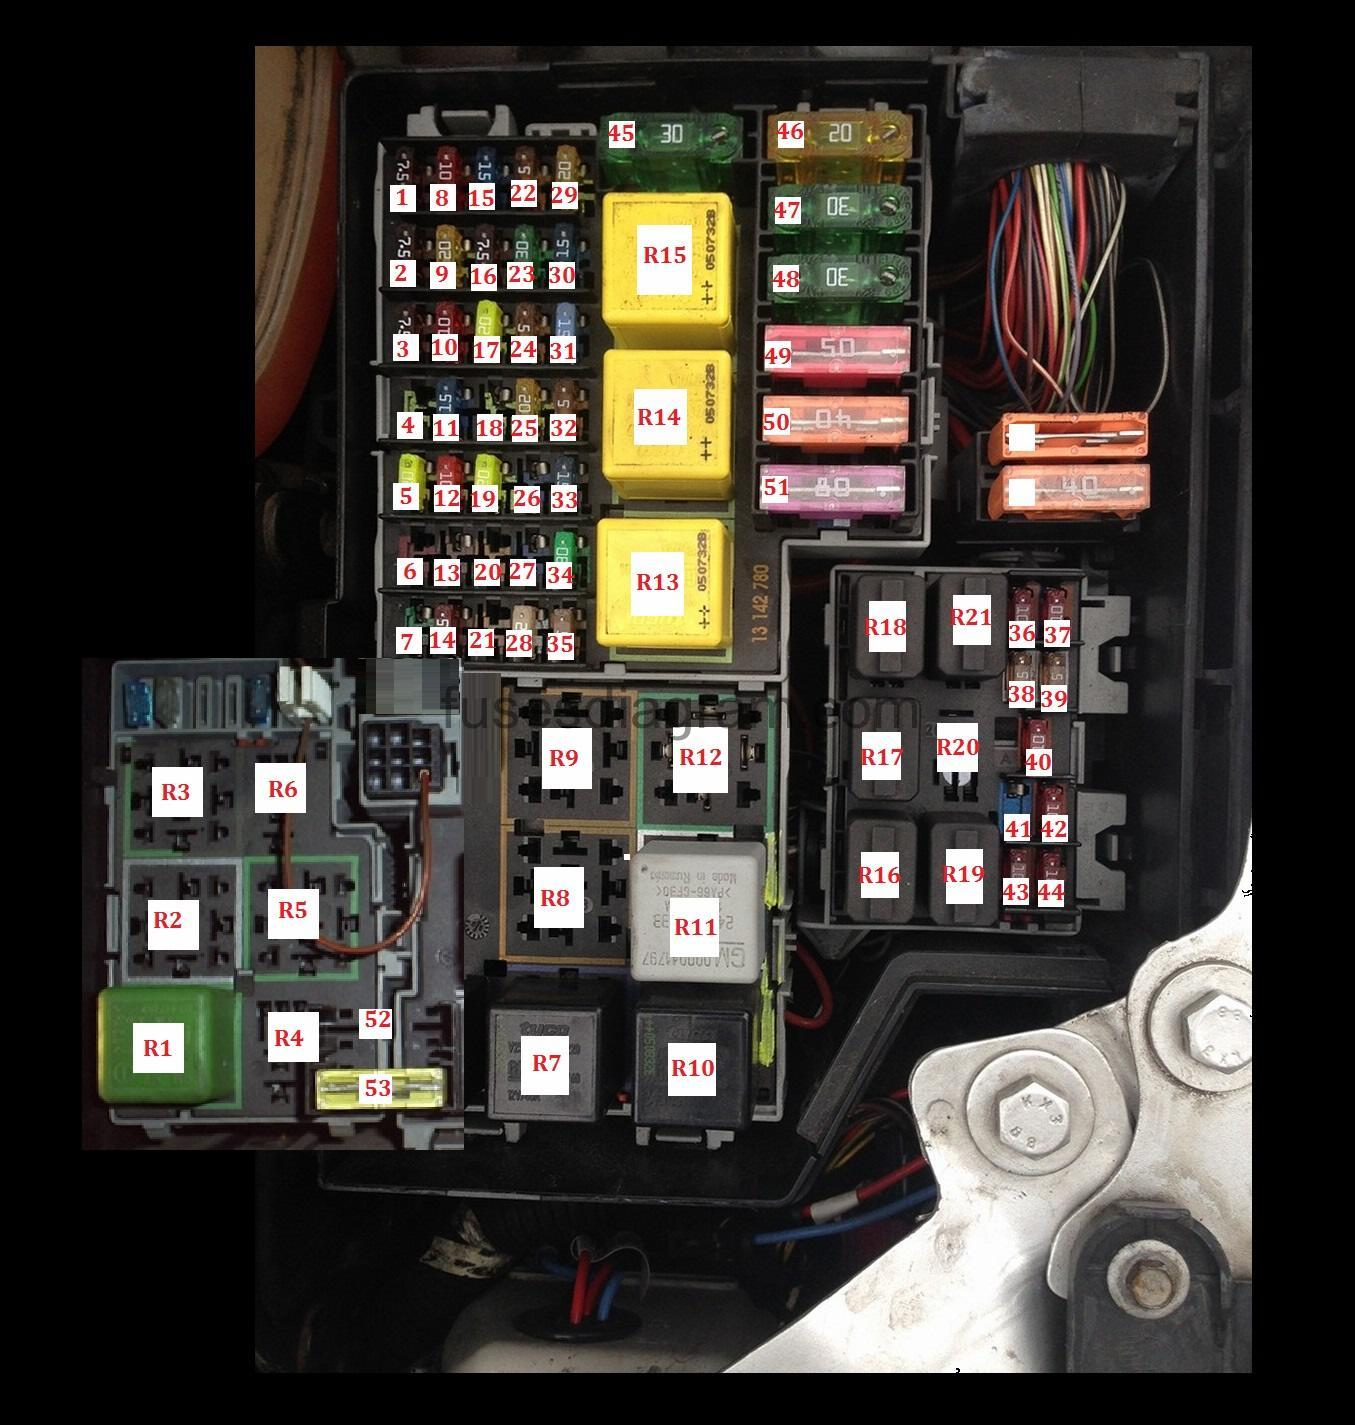 Vauxhall Corsa 53 Plate Fuse Box Free Wiring Diagram For You Astra 52 Opel C Rh Fusesdiagram Com Vectra